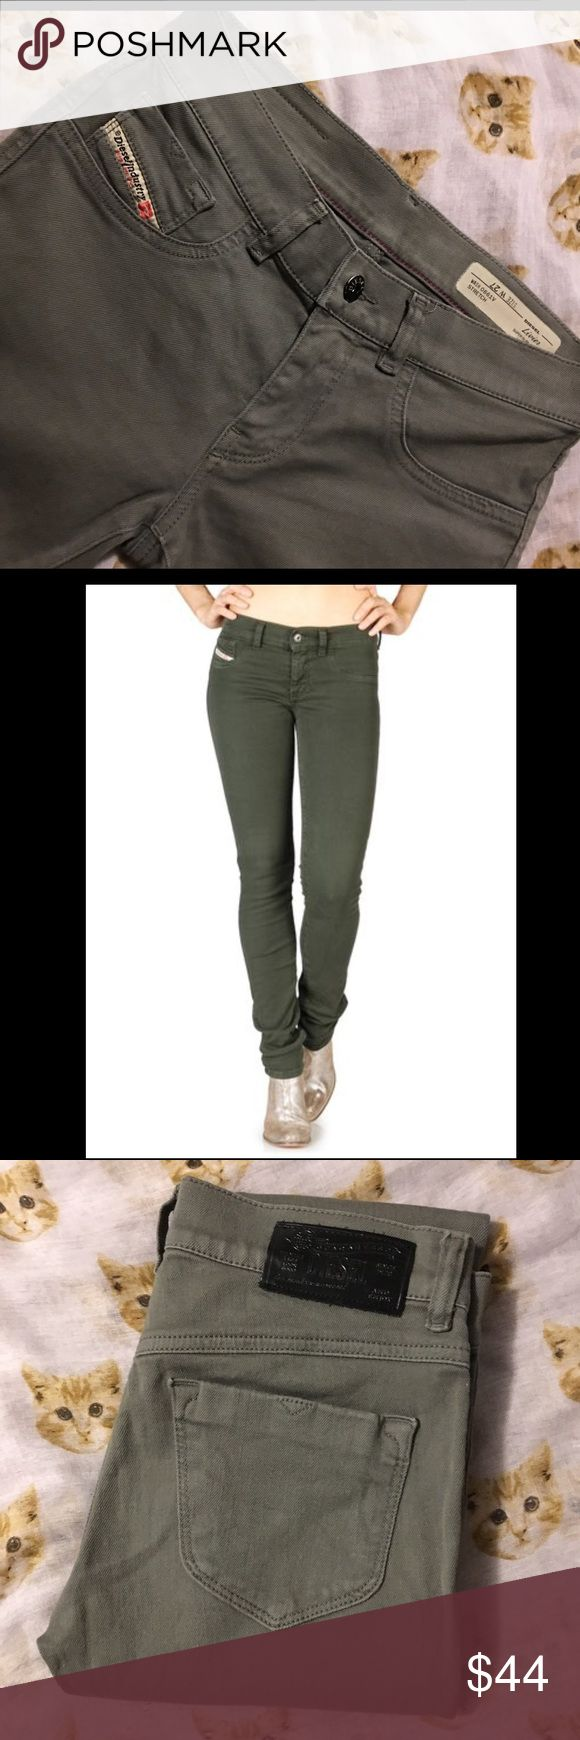 💋DIESEL 'LIVIER' SUPER SLIM LEGGINGS JEAN SZ 27💋 NWOT DIESEL 'LIVIER' SUPER SLIM JEGGING IN A SIZE 27 WITH NO FLAWS OR DEFECTS. WASH 0661V STRETCH (OLIVE COLOR) Questions, please ask! Thank you for looking.:) Diesel Jeans Skinny